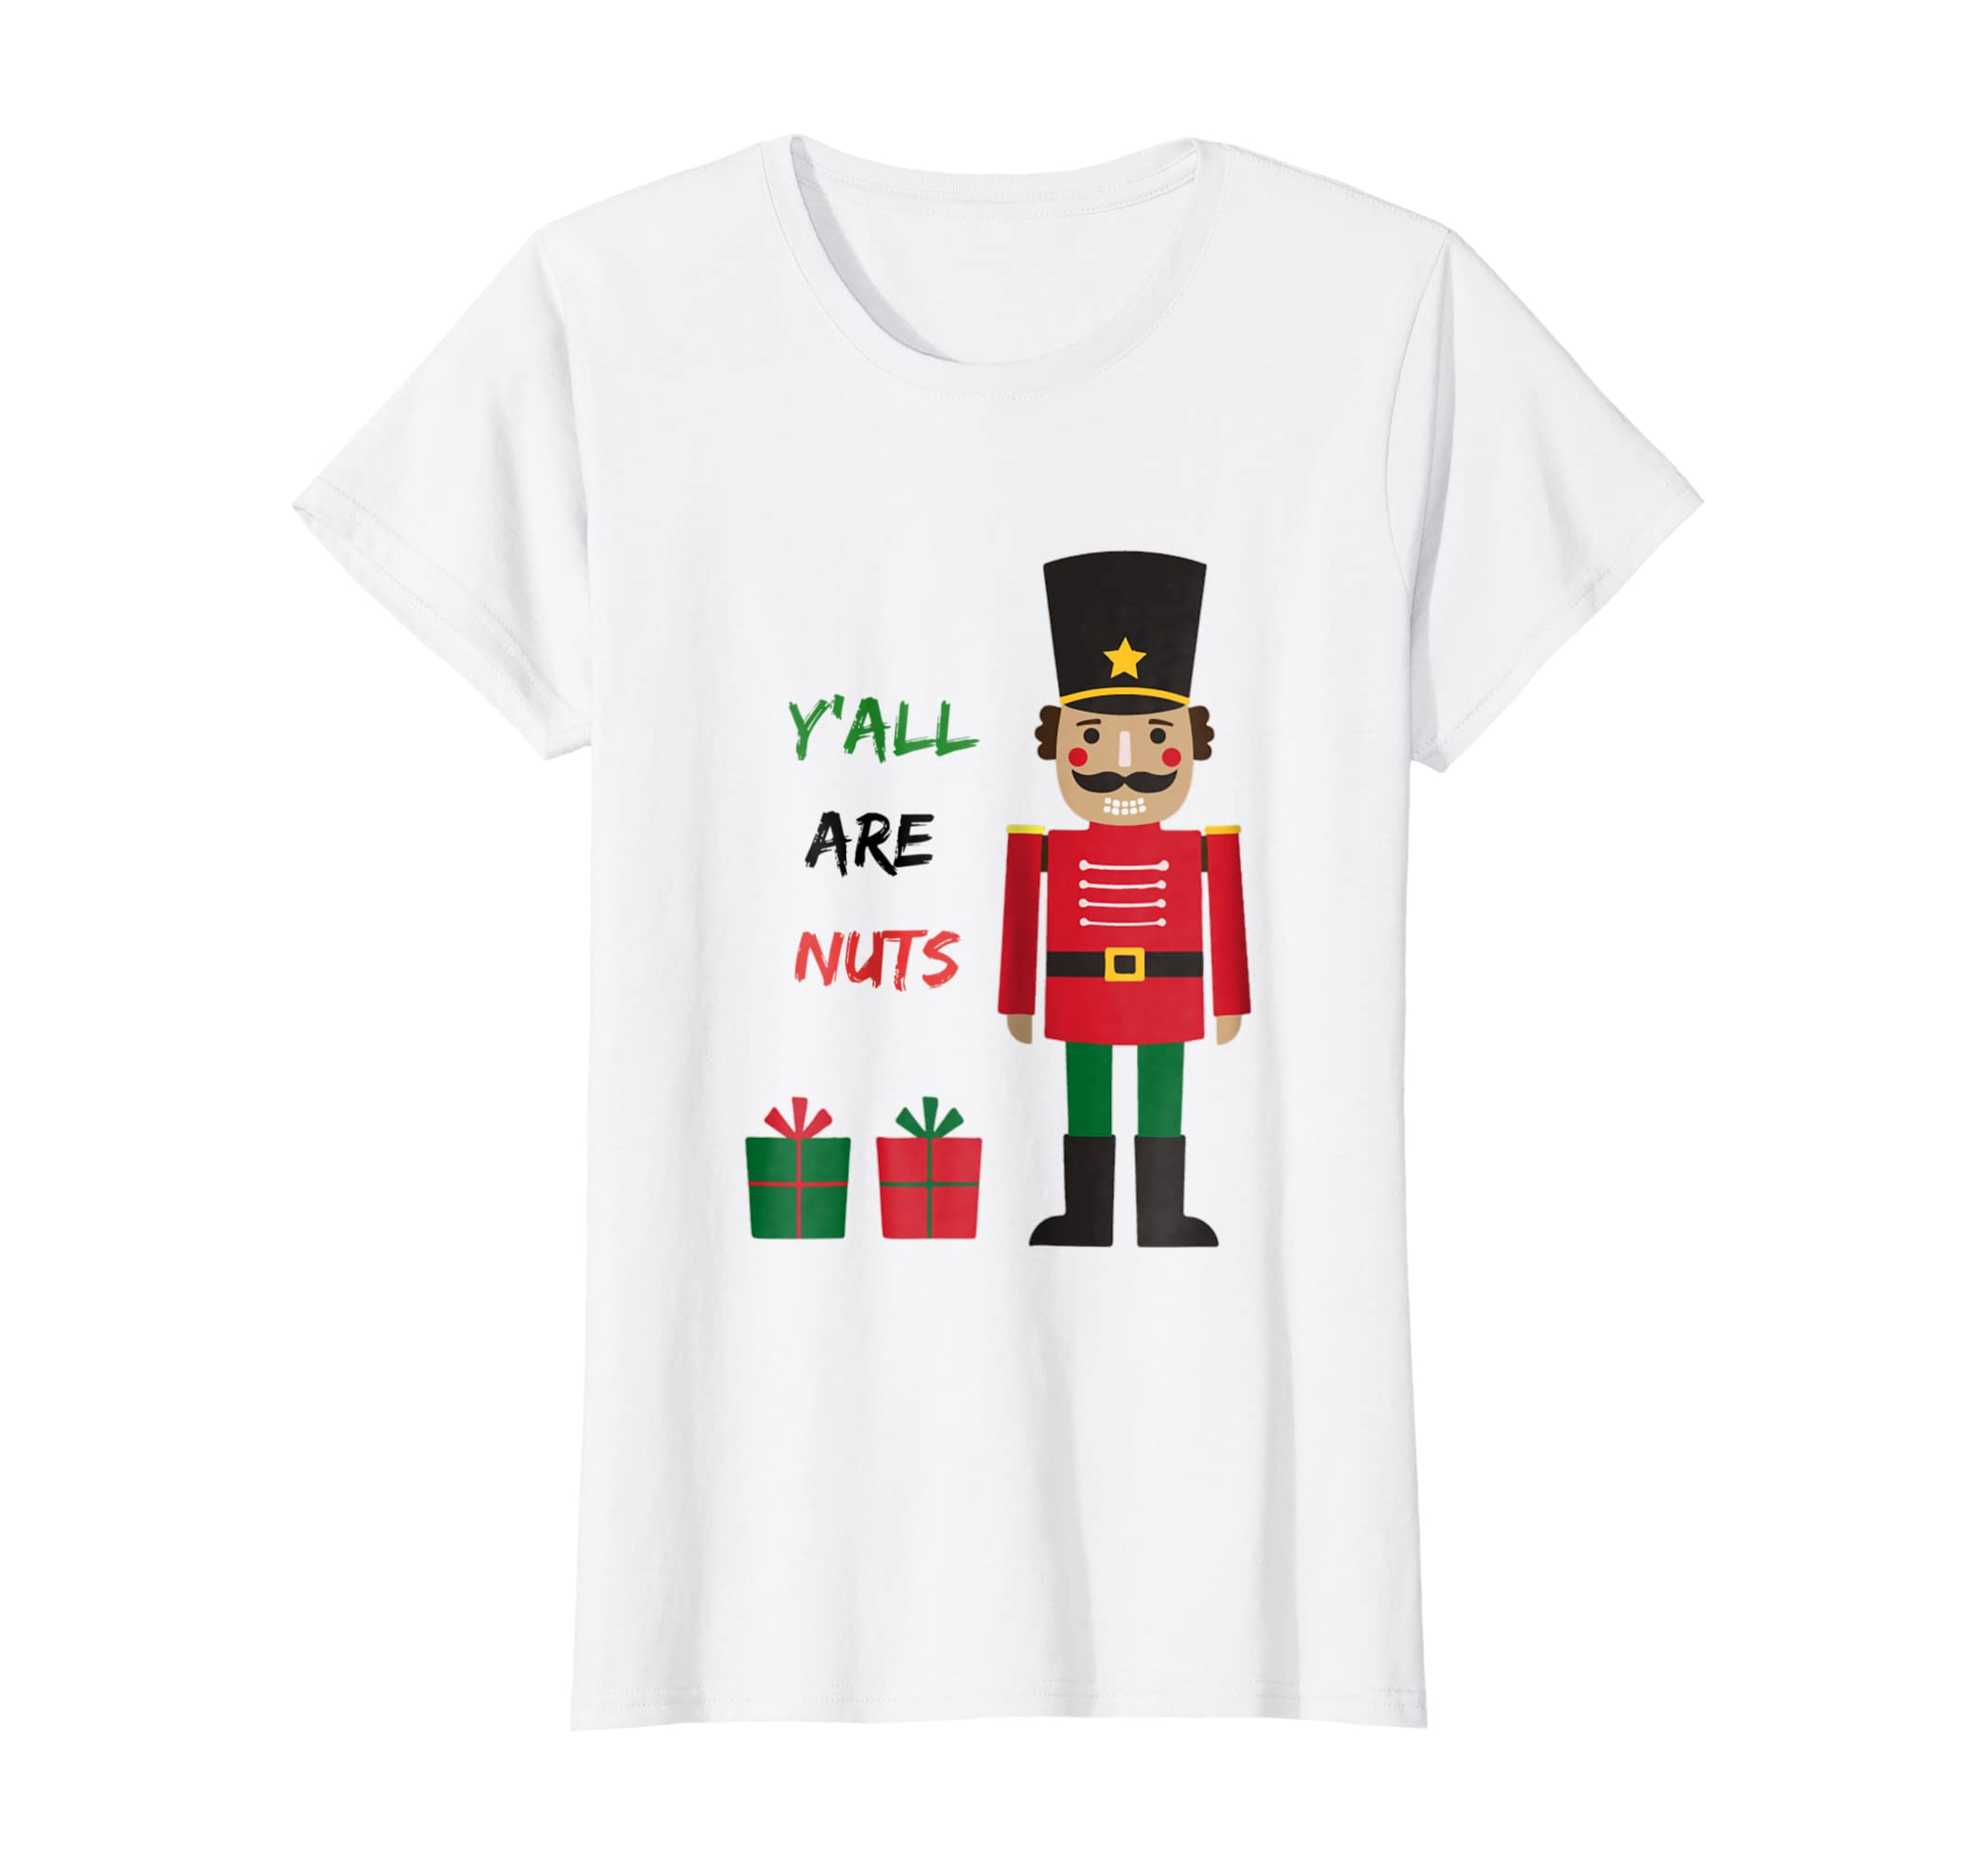 d18c58f90 Amazon.com: Y'all are nuts T-Shirt - Funny Nutcracker Christmas Gift Tee:  Clothing